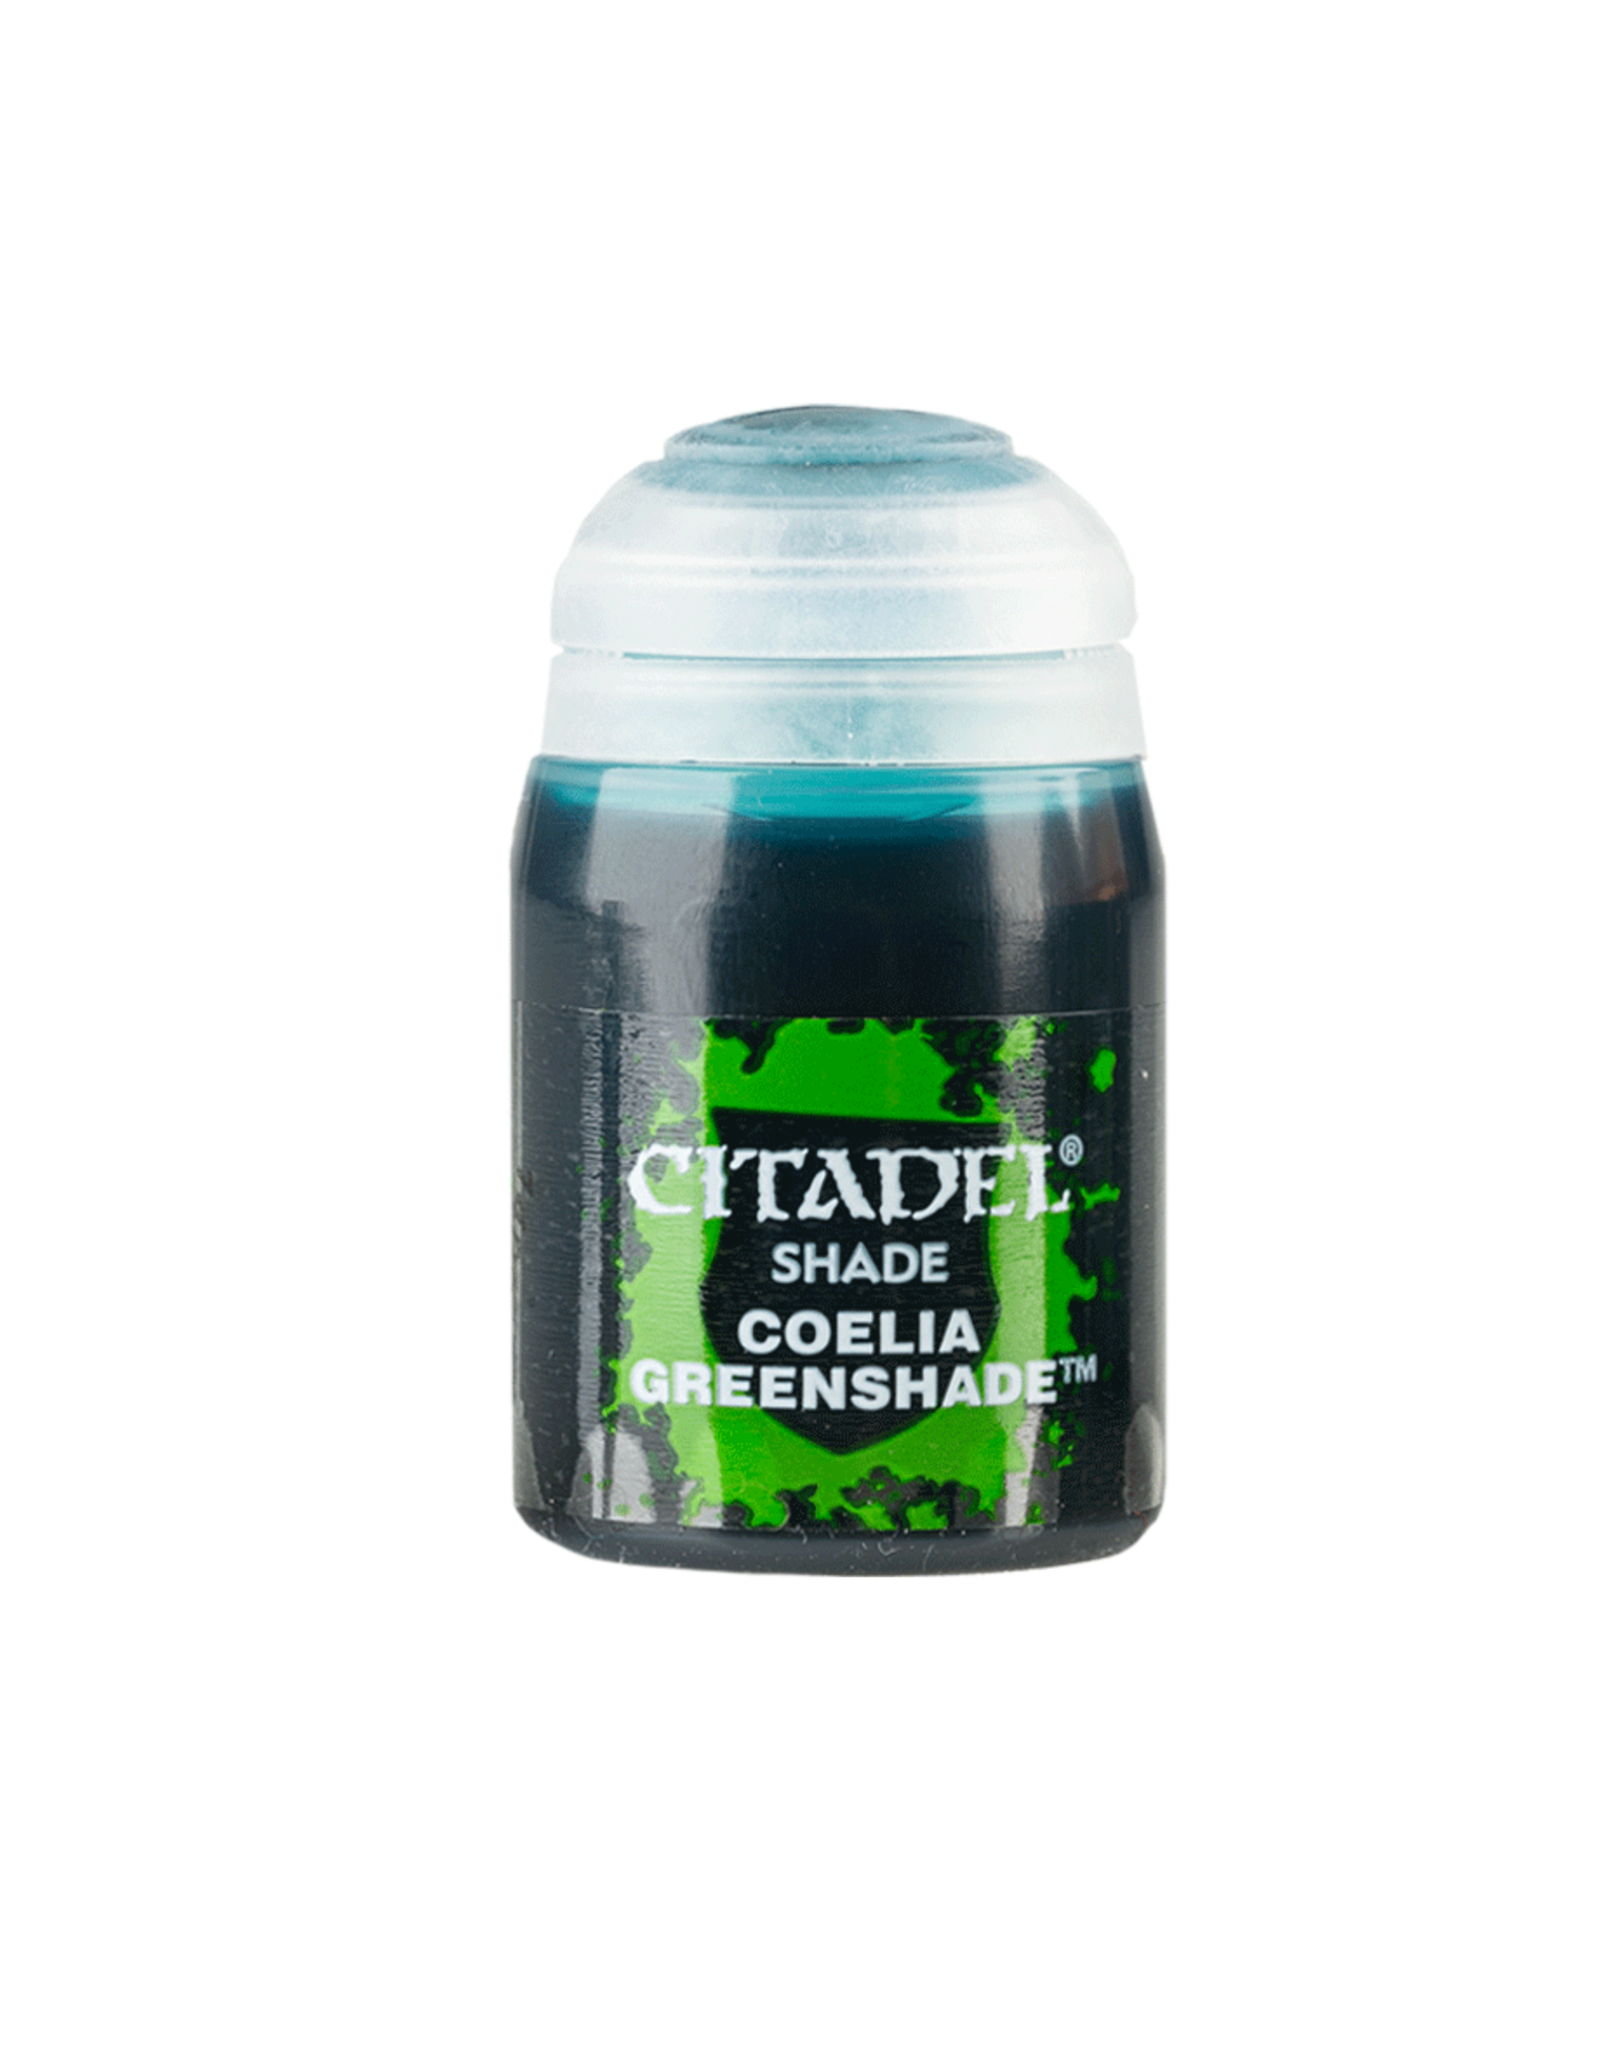 Citadel SHADE: COELIA GREENSHADE (24ML)